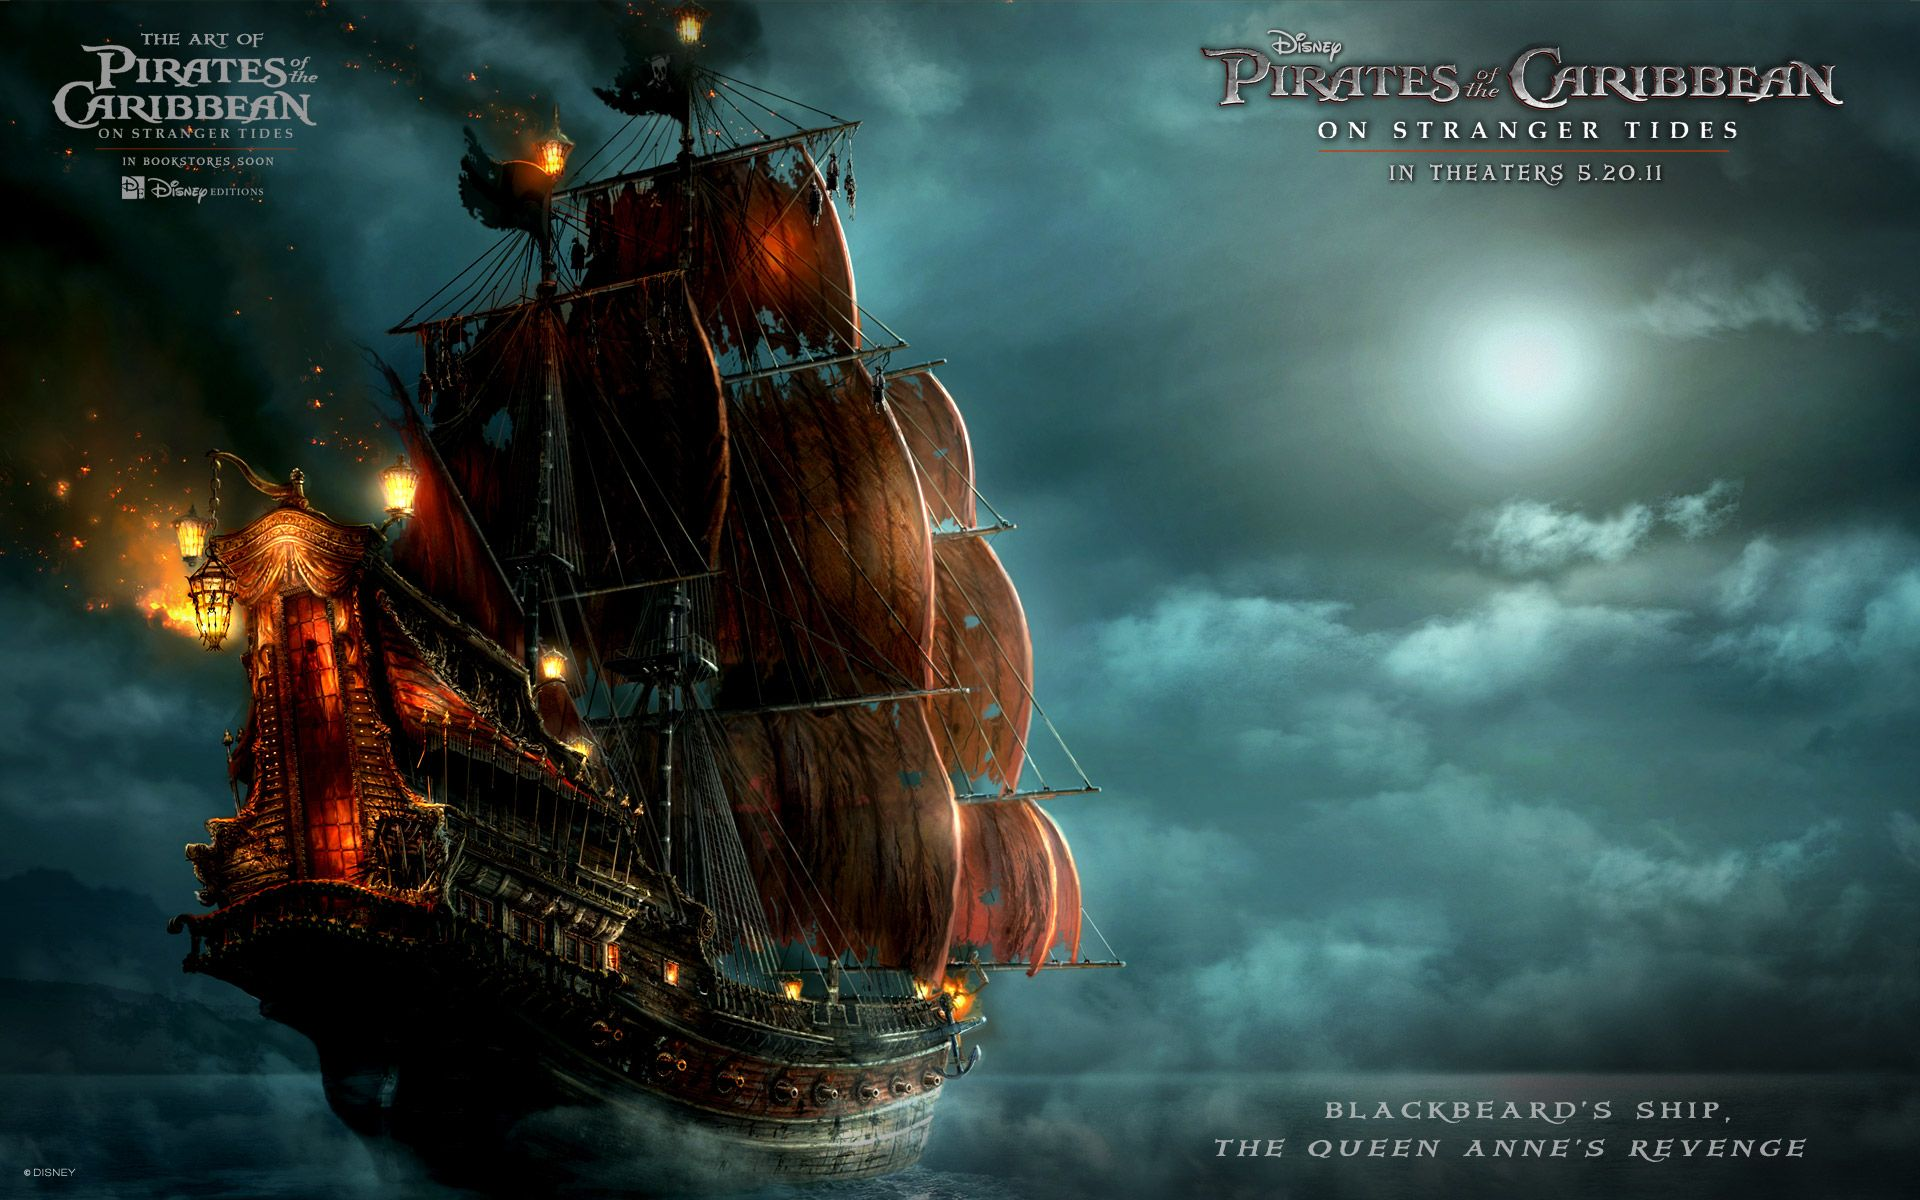 Cool Ultra Hd Pirates Of The Caribbean Hd Wallpaper Images Ghost Ship On Stranger Tides Ship Artwork